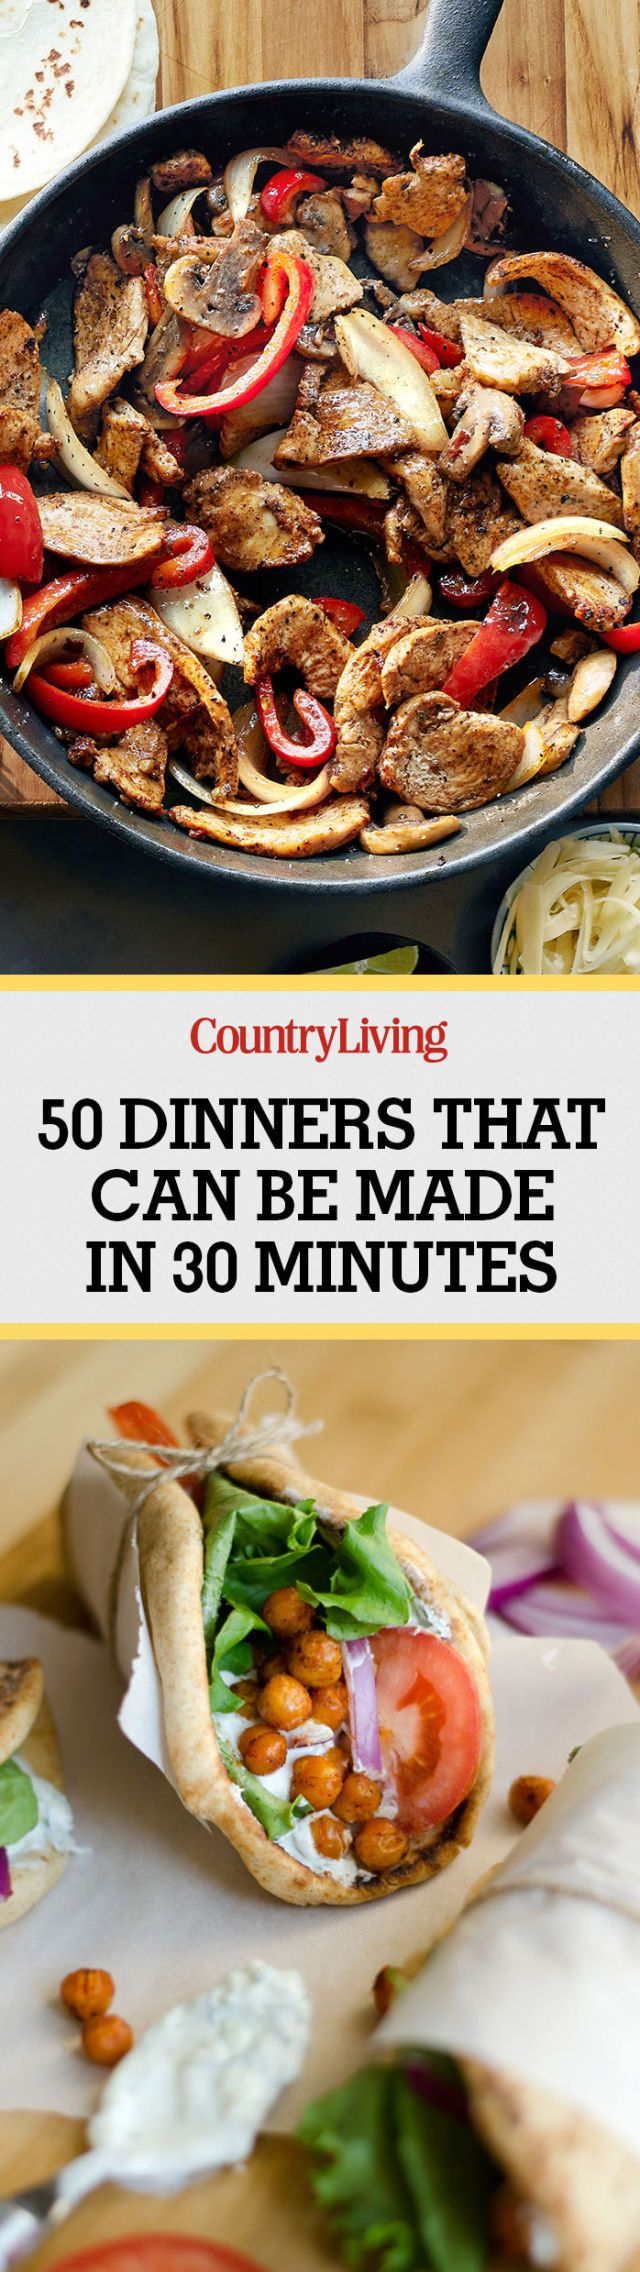 95 easy meals that can be made in 30 minutes or less 30 minutes 95 easy meals that can be made in 30 minutes or less sisterspd